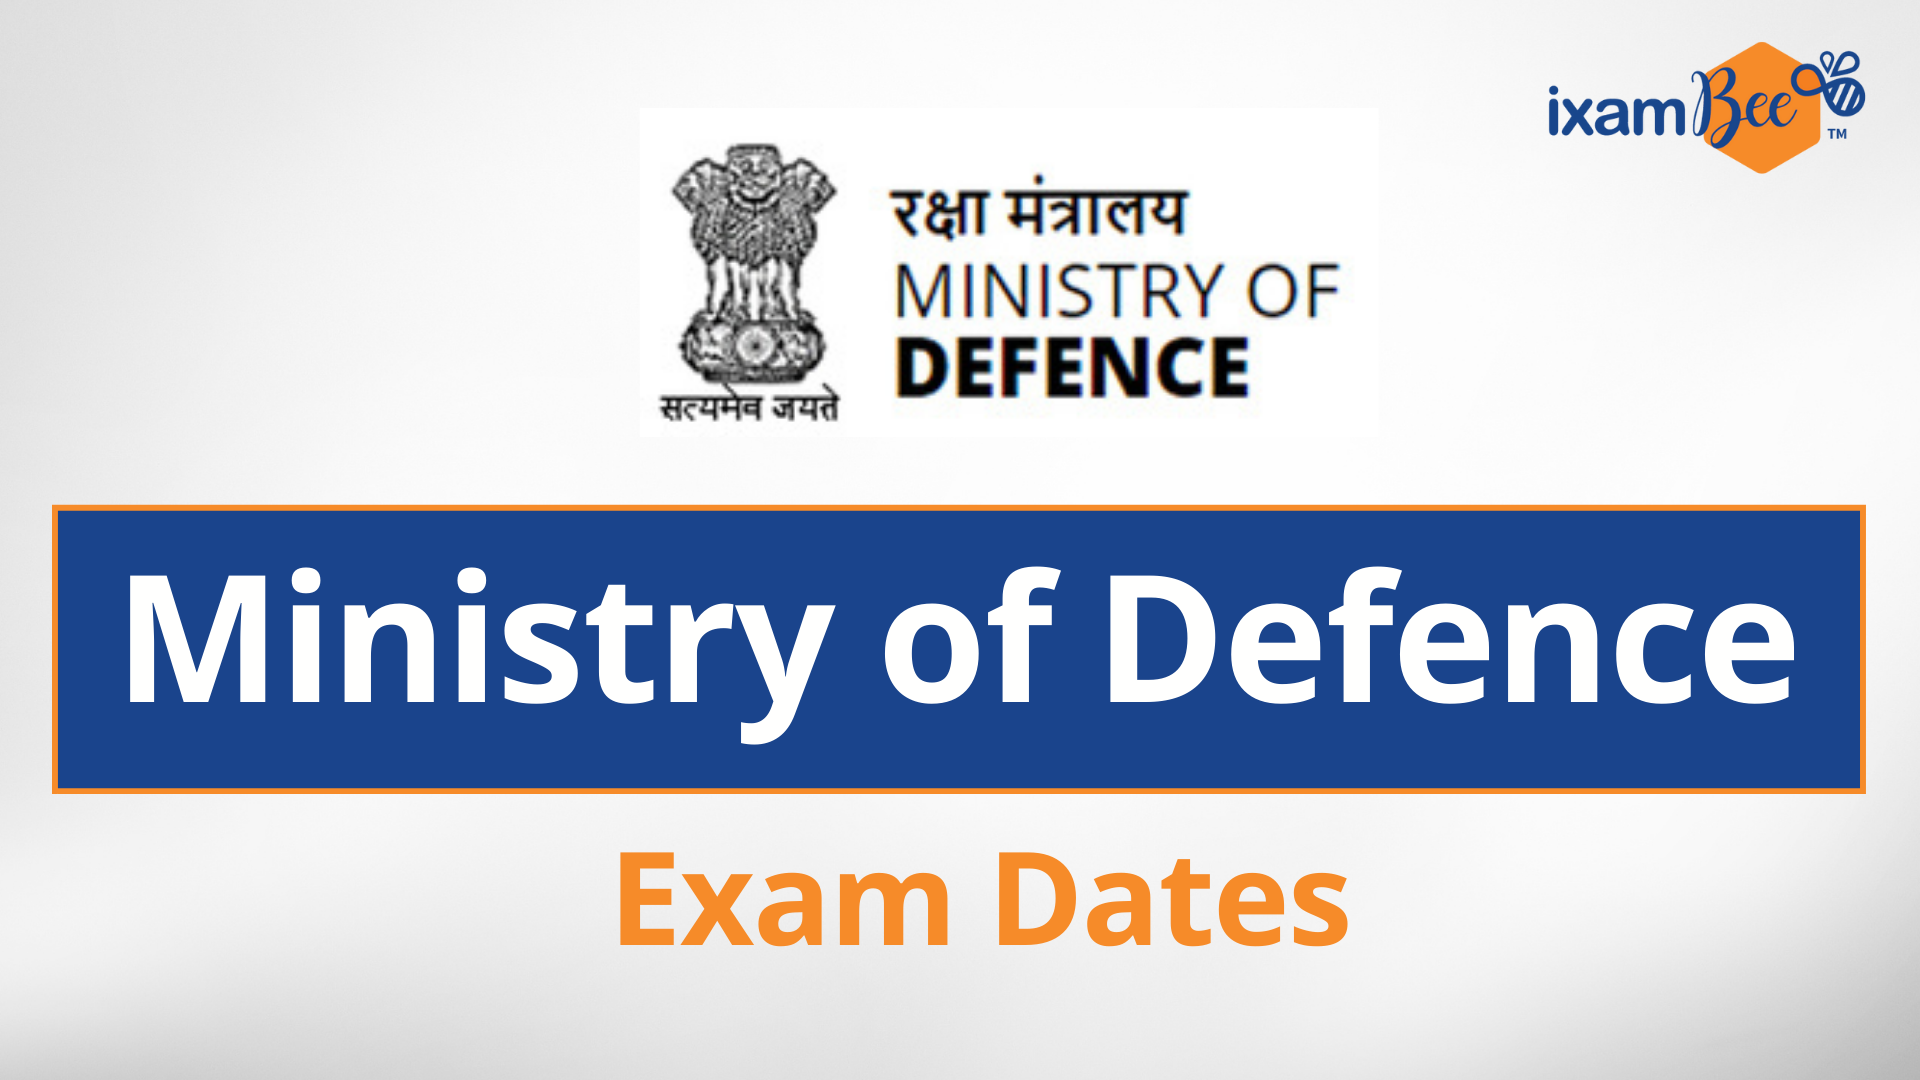 Ministry of Defence Exam Dates 2021